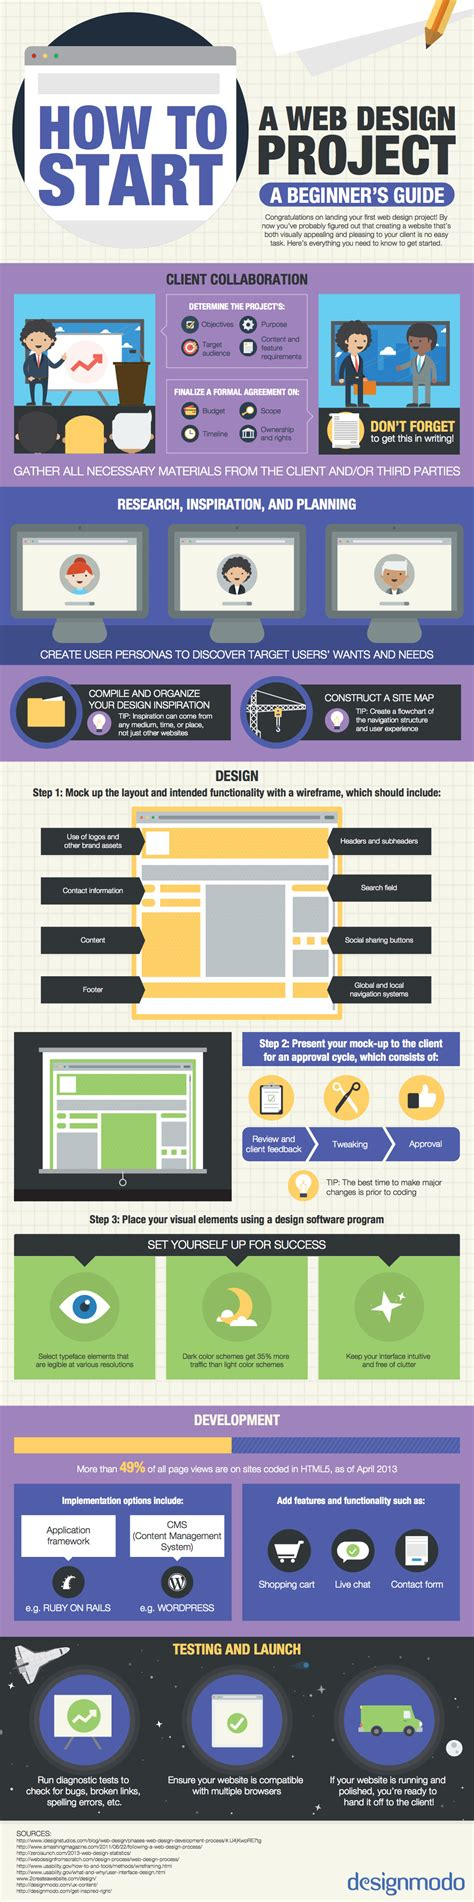 designing websites how to start a web design project infographic designmodo